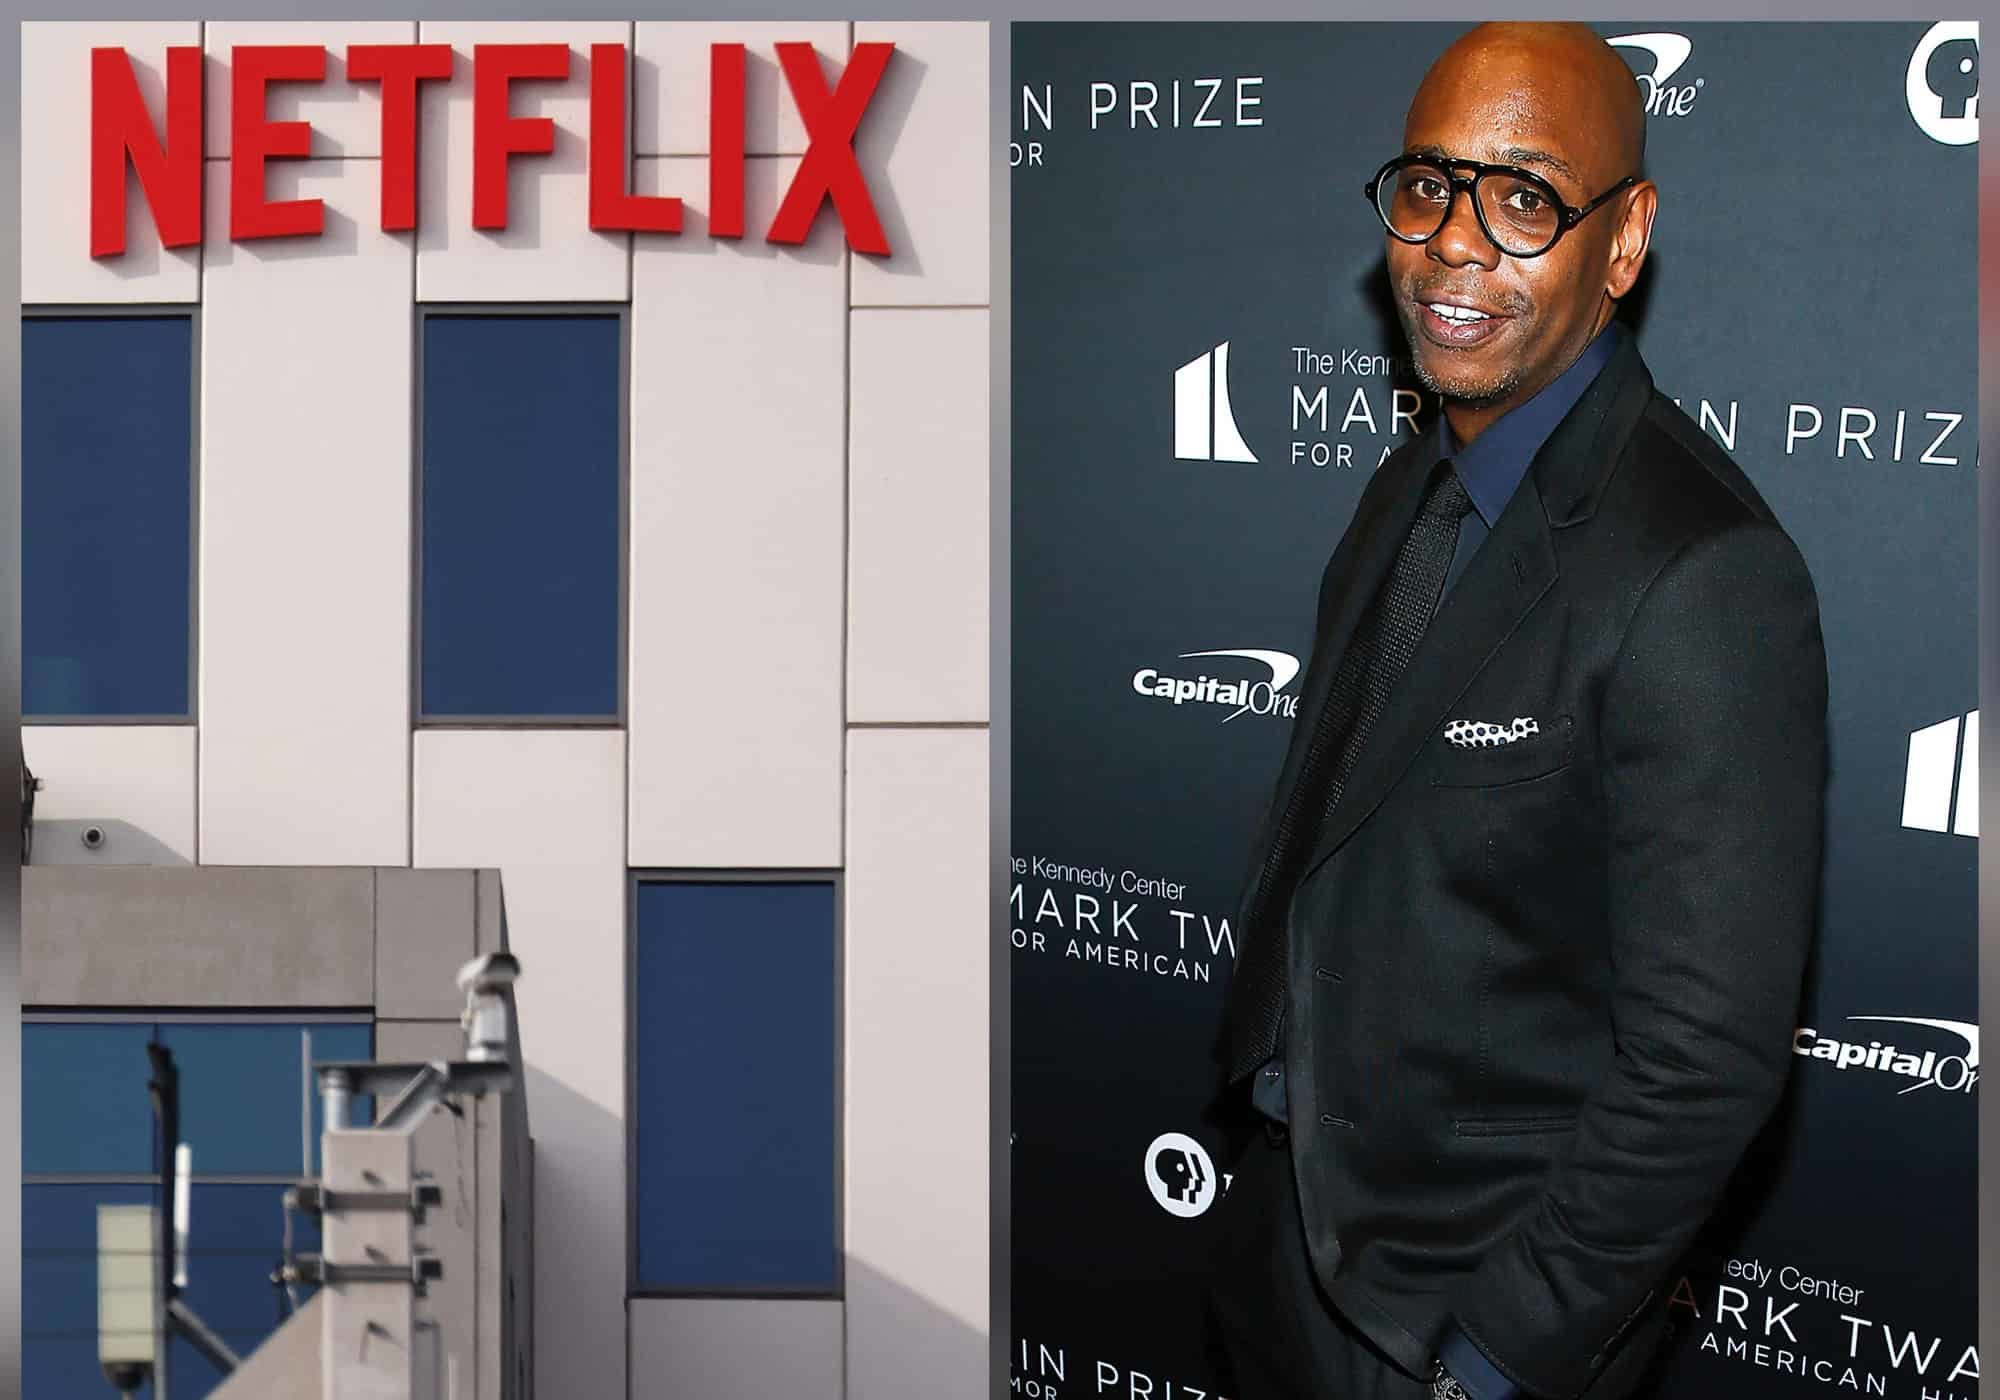 Netflix and Dave Chappelle